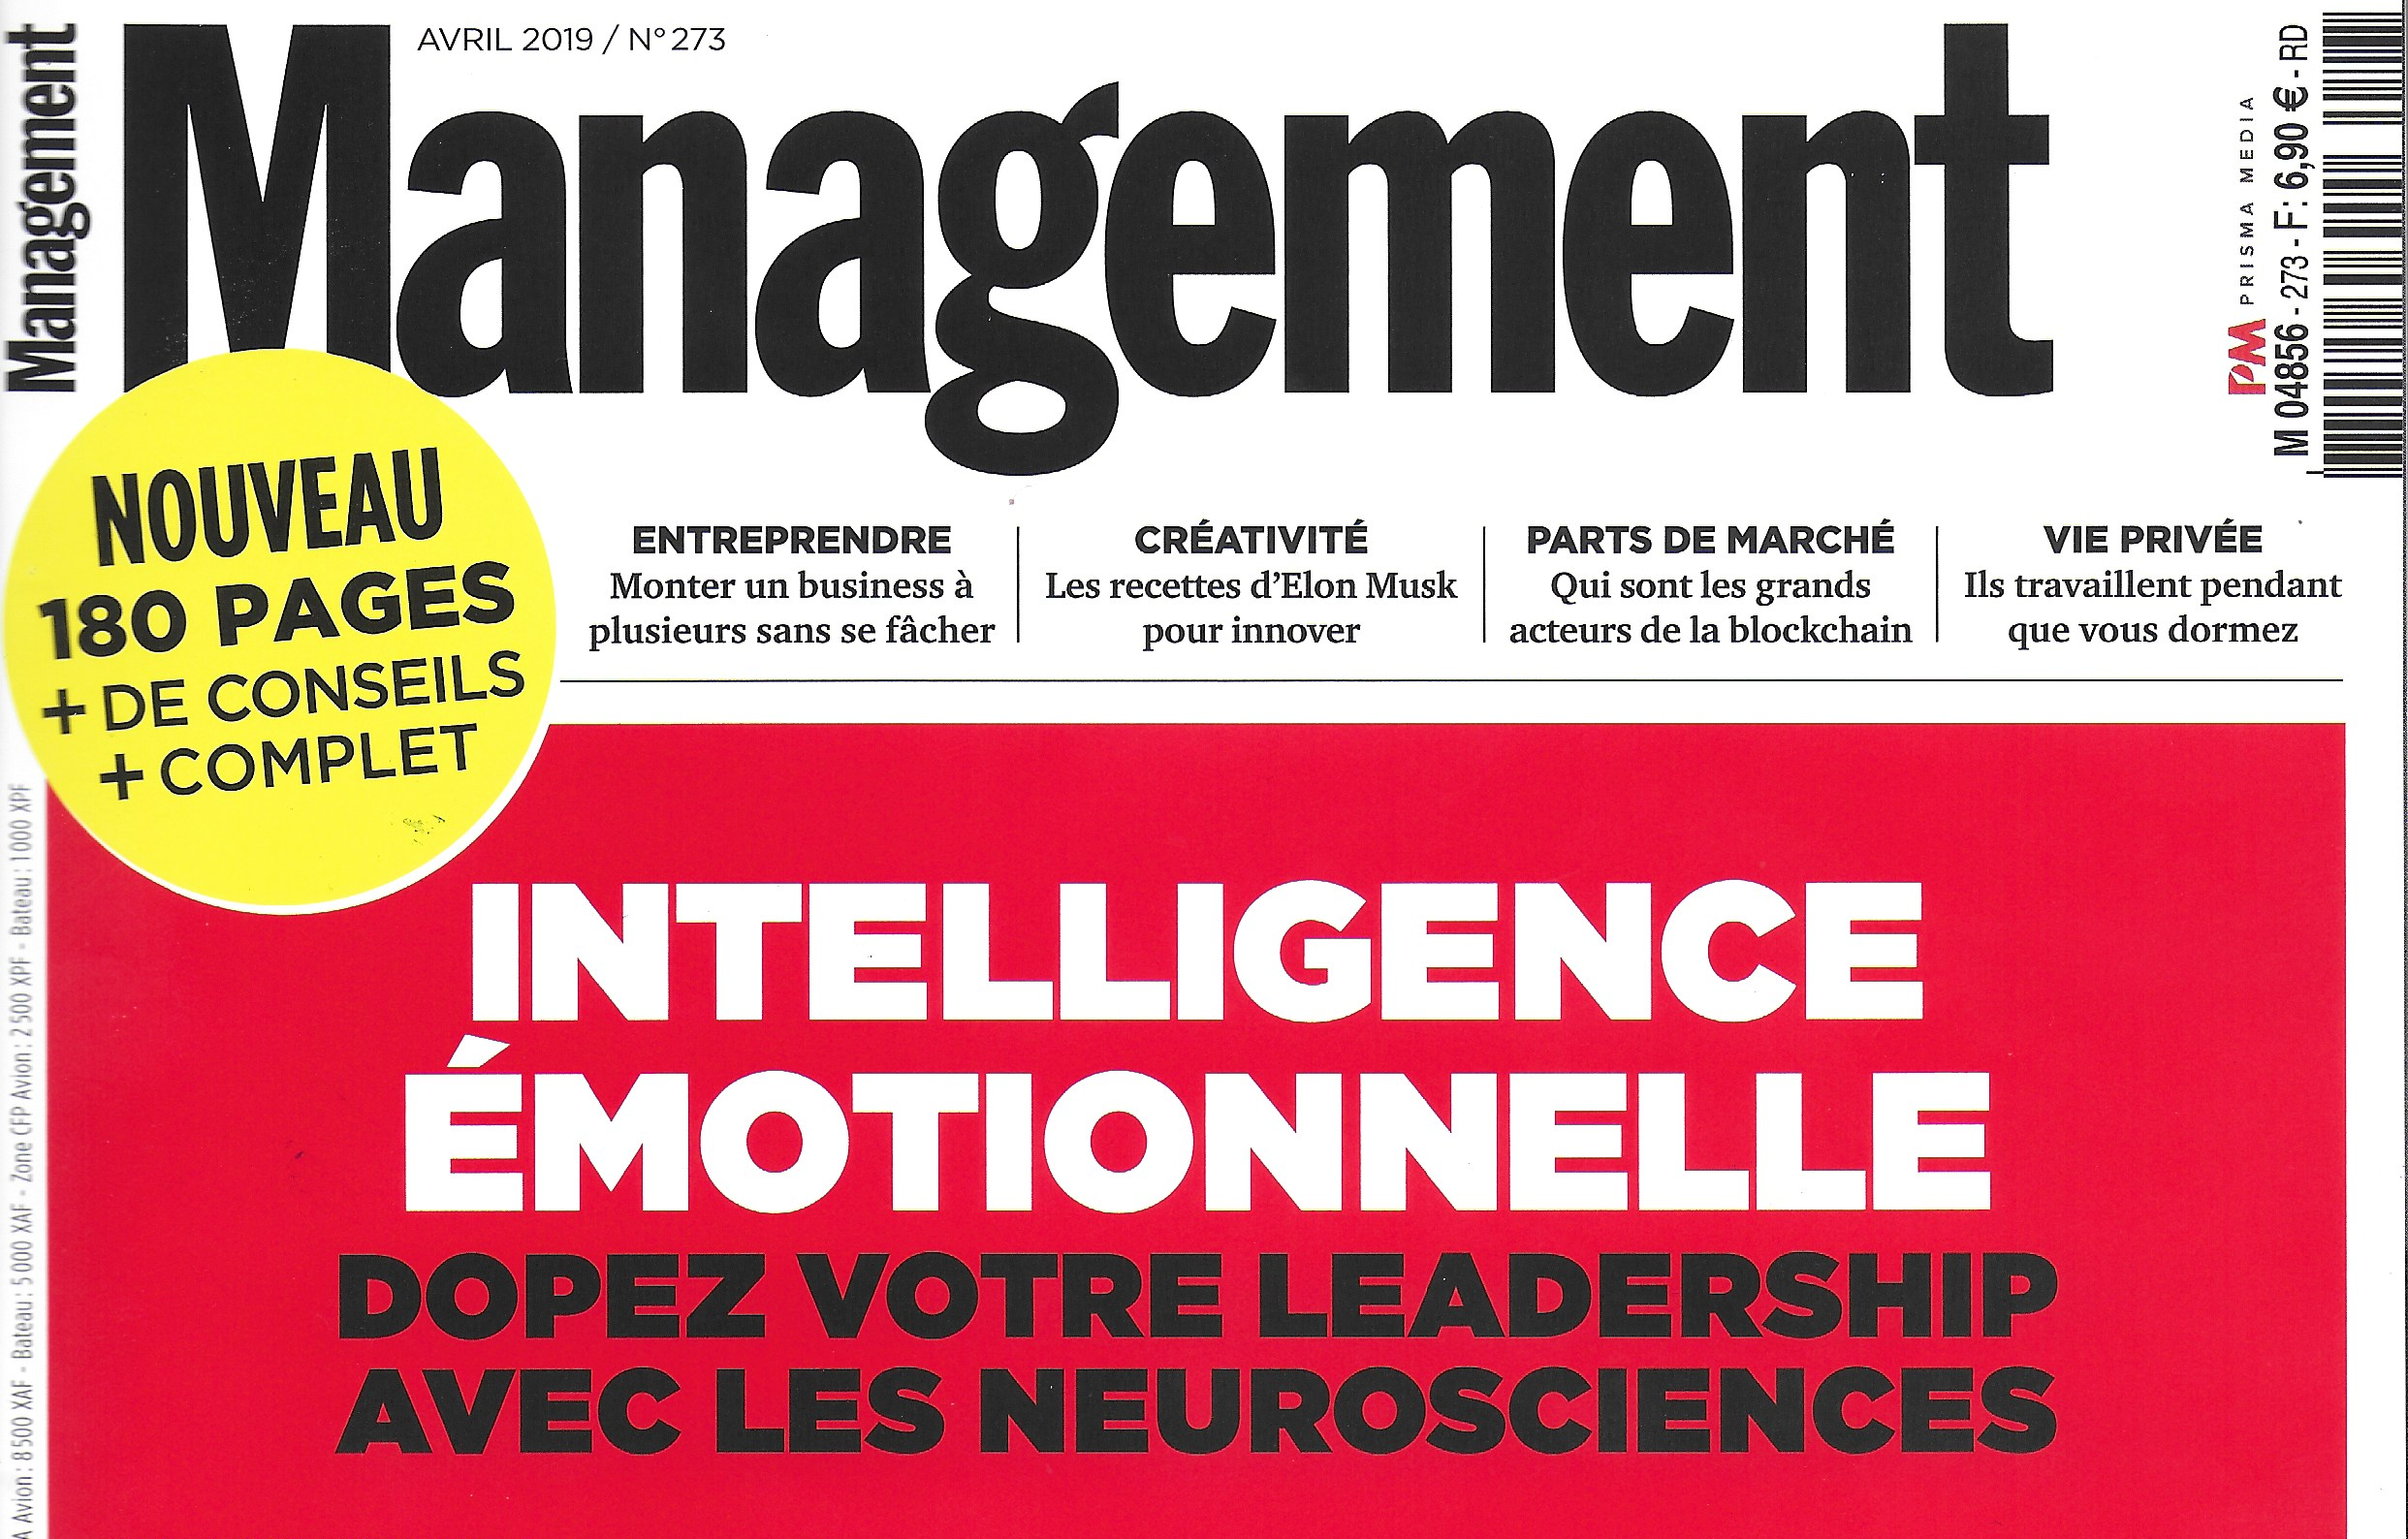 LEADER POSITIF et NEUROSCIENCES: Yves Le Bihan interviewé par MANAGEMENT